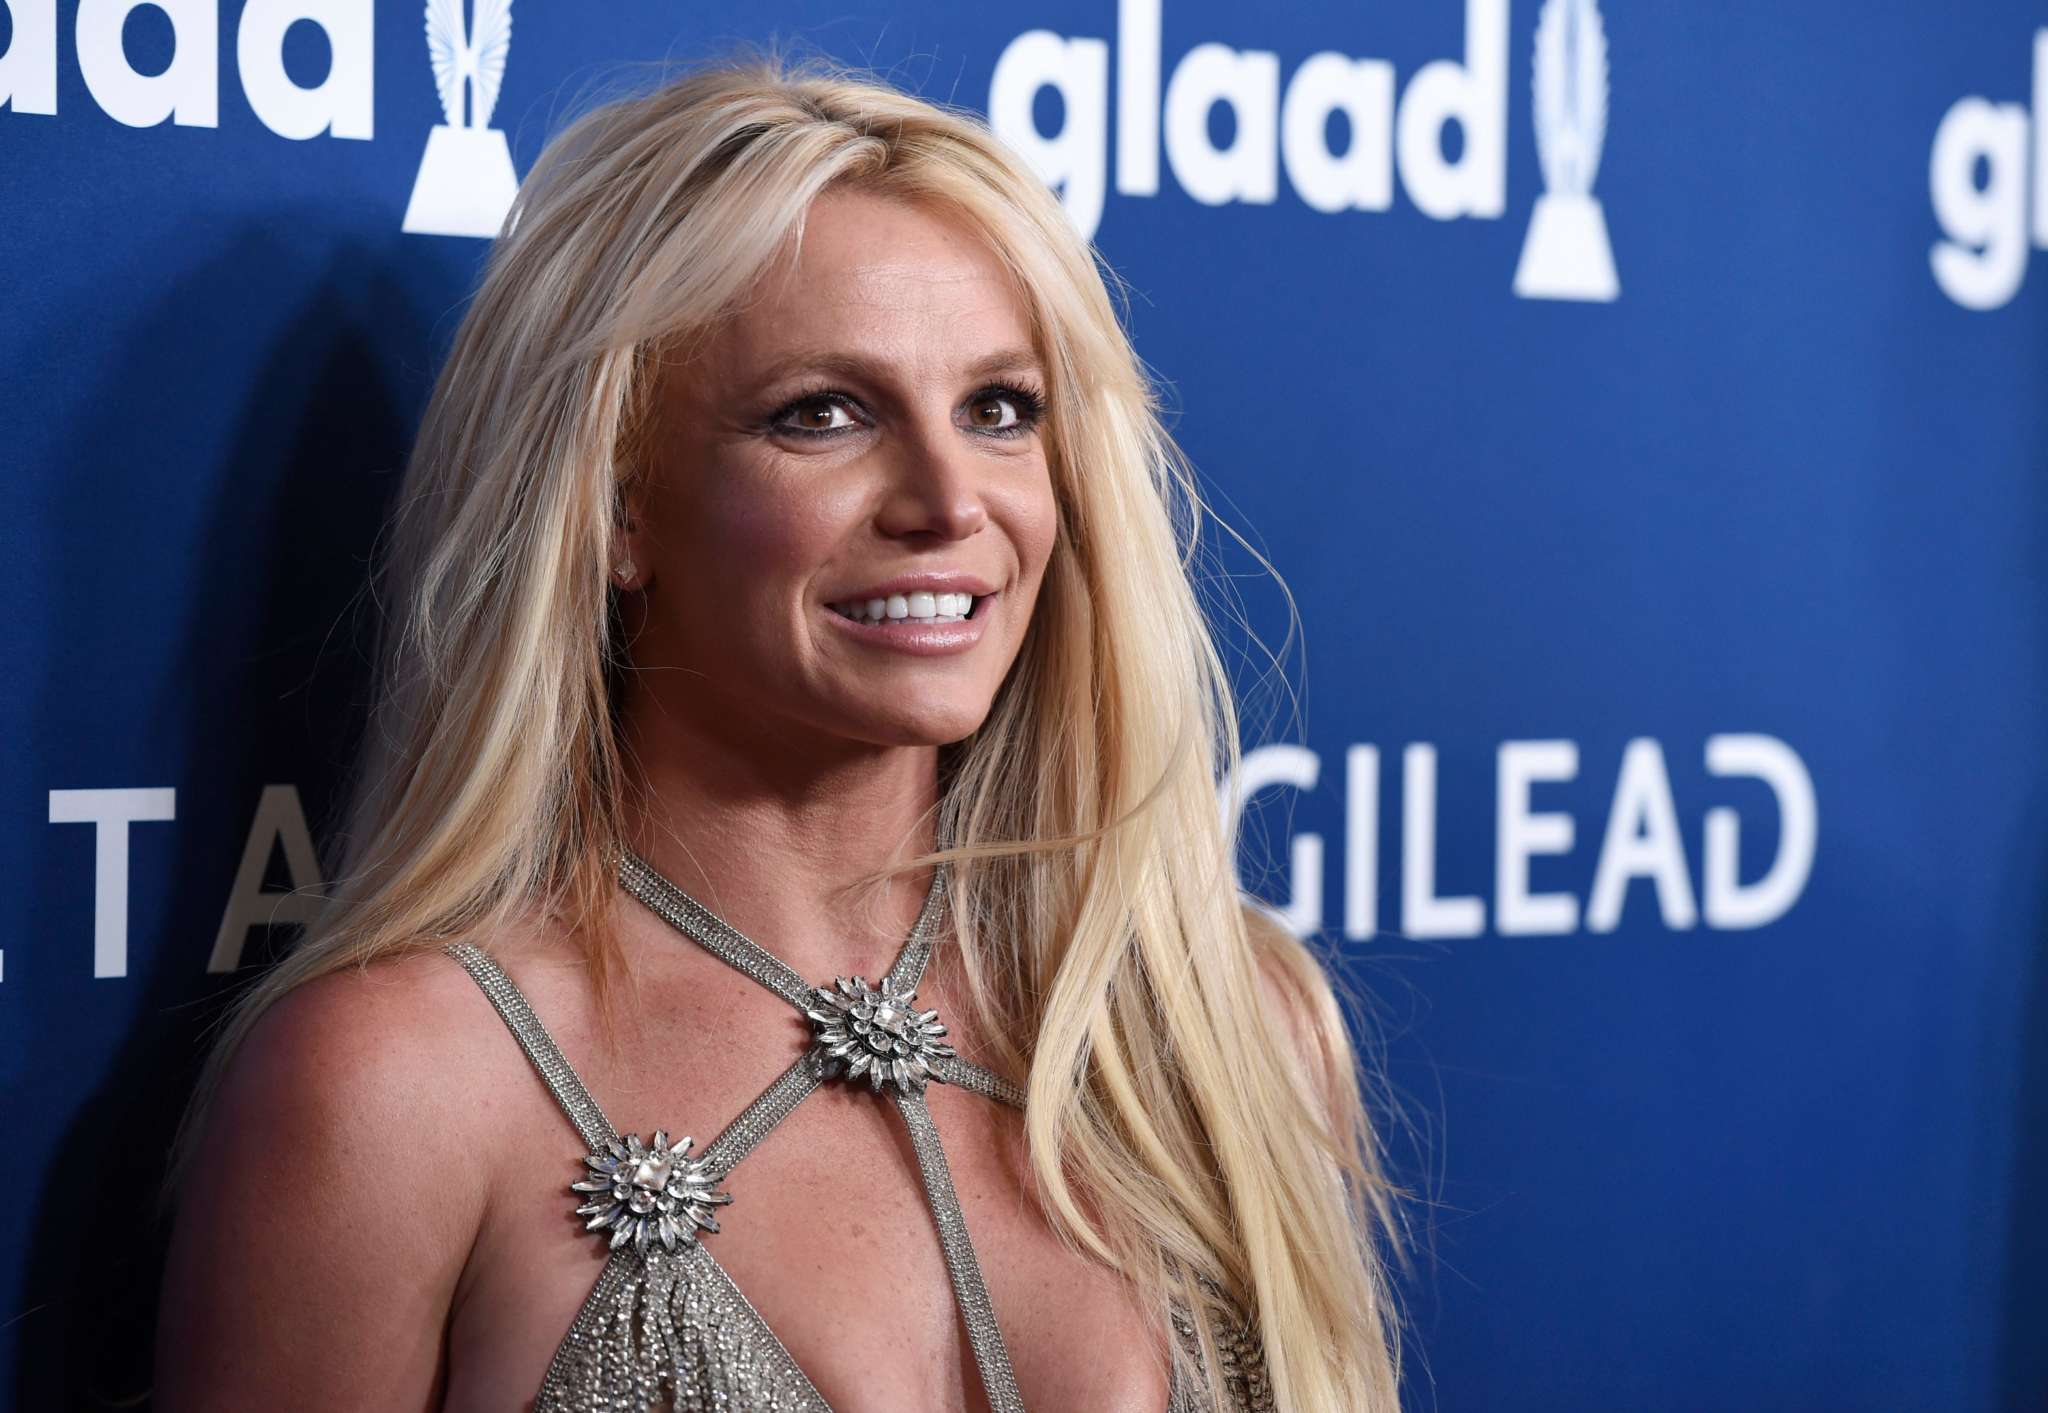 Britney Spears Former Photographer Is Worried About The Star — Reads Letter She Wrote Saying She Has 'No Rights'